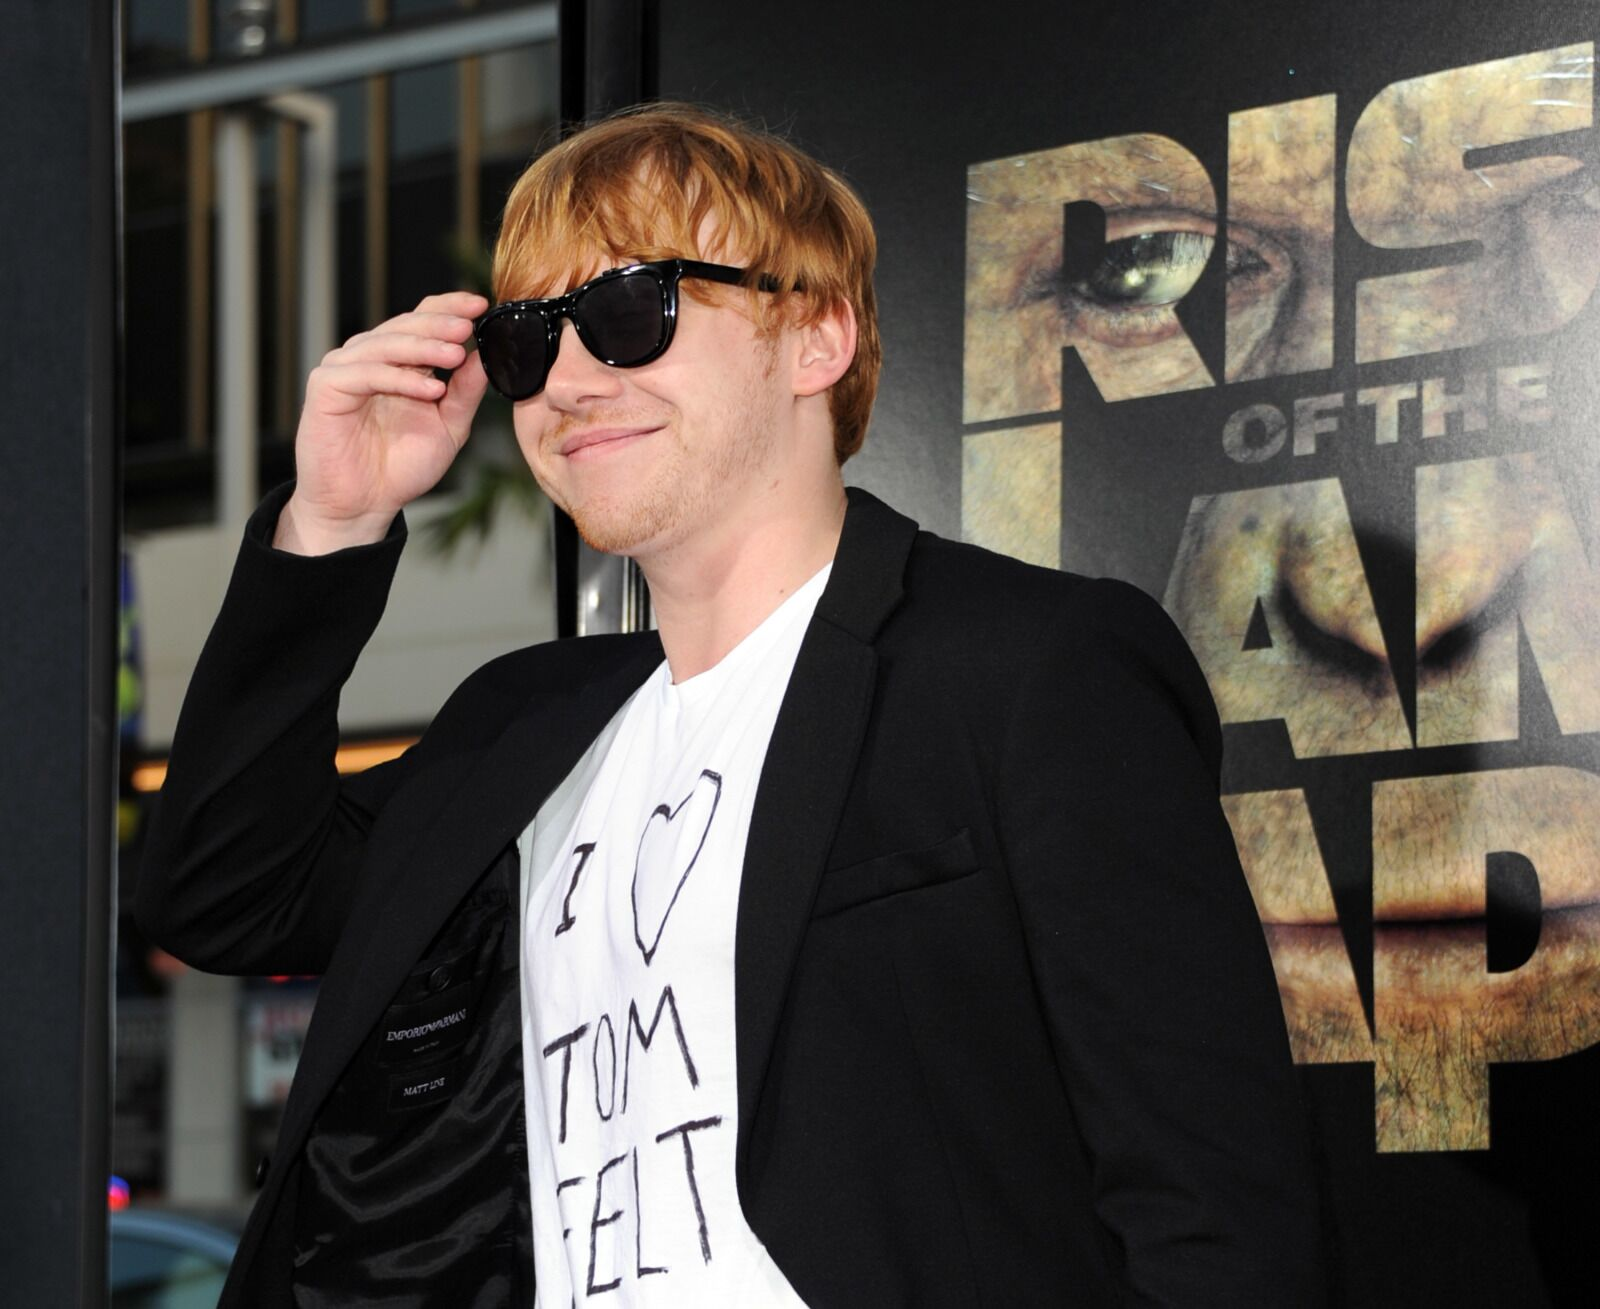 7 iconic Ron Weasley moments to rewatch for Rupert Grint's birthday